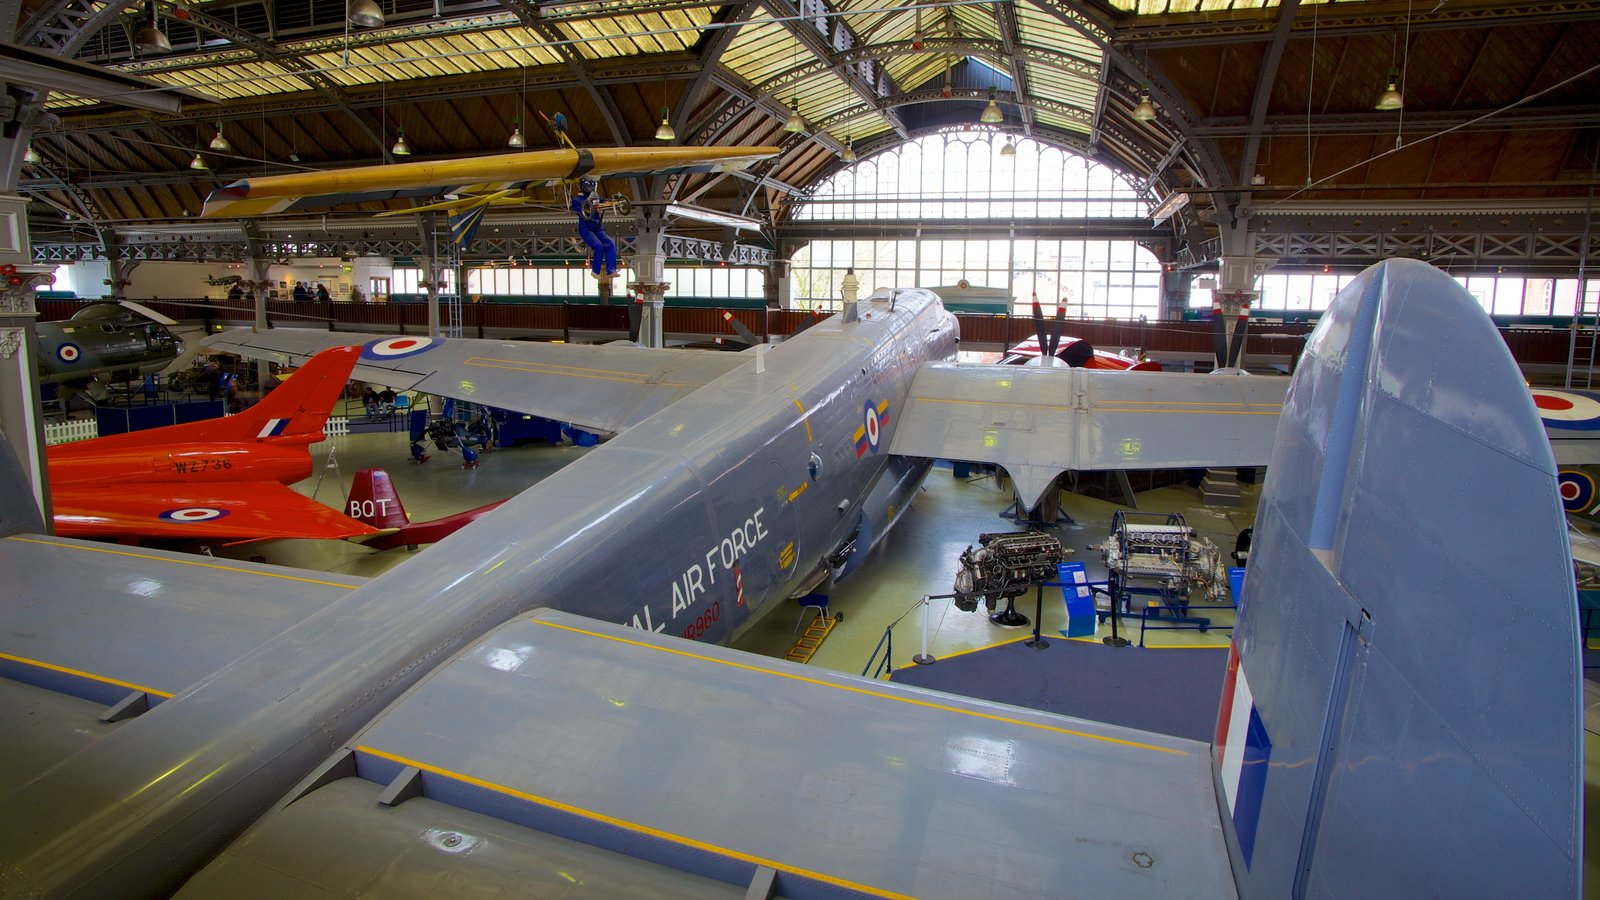 Museum of Science and Industry featuring aircraft and interior views